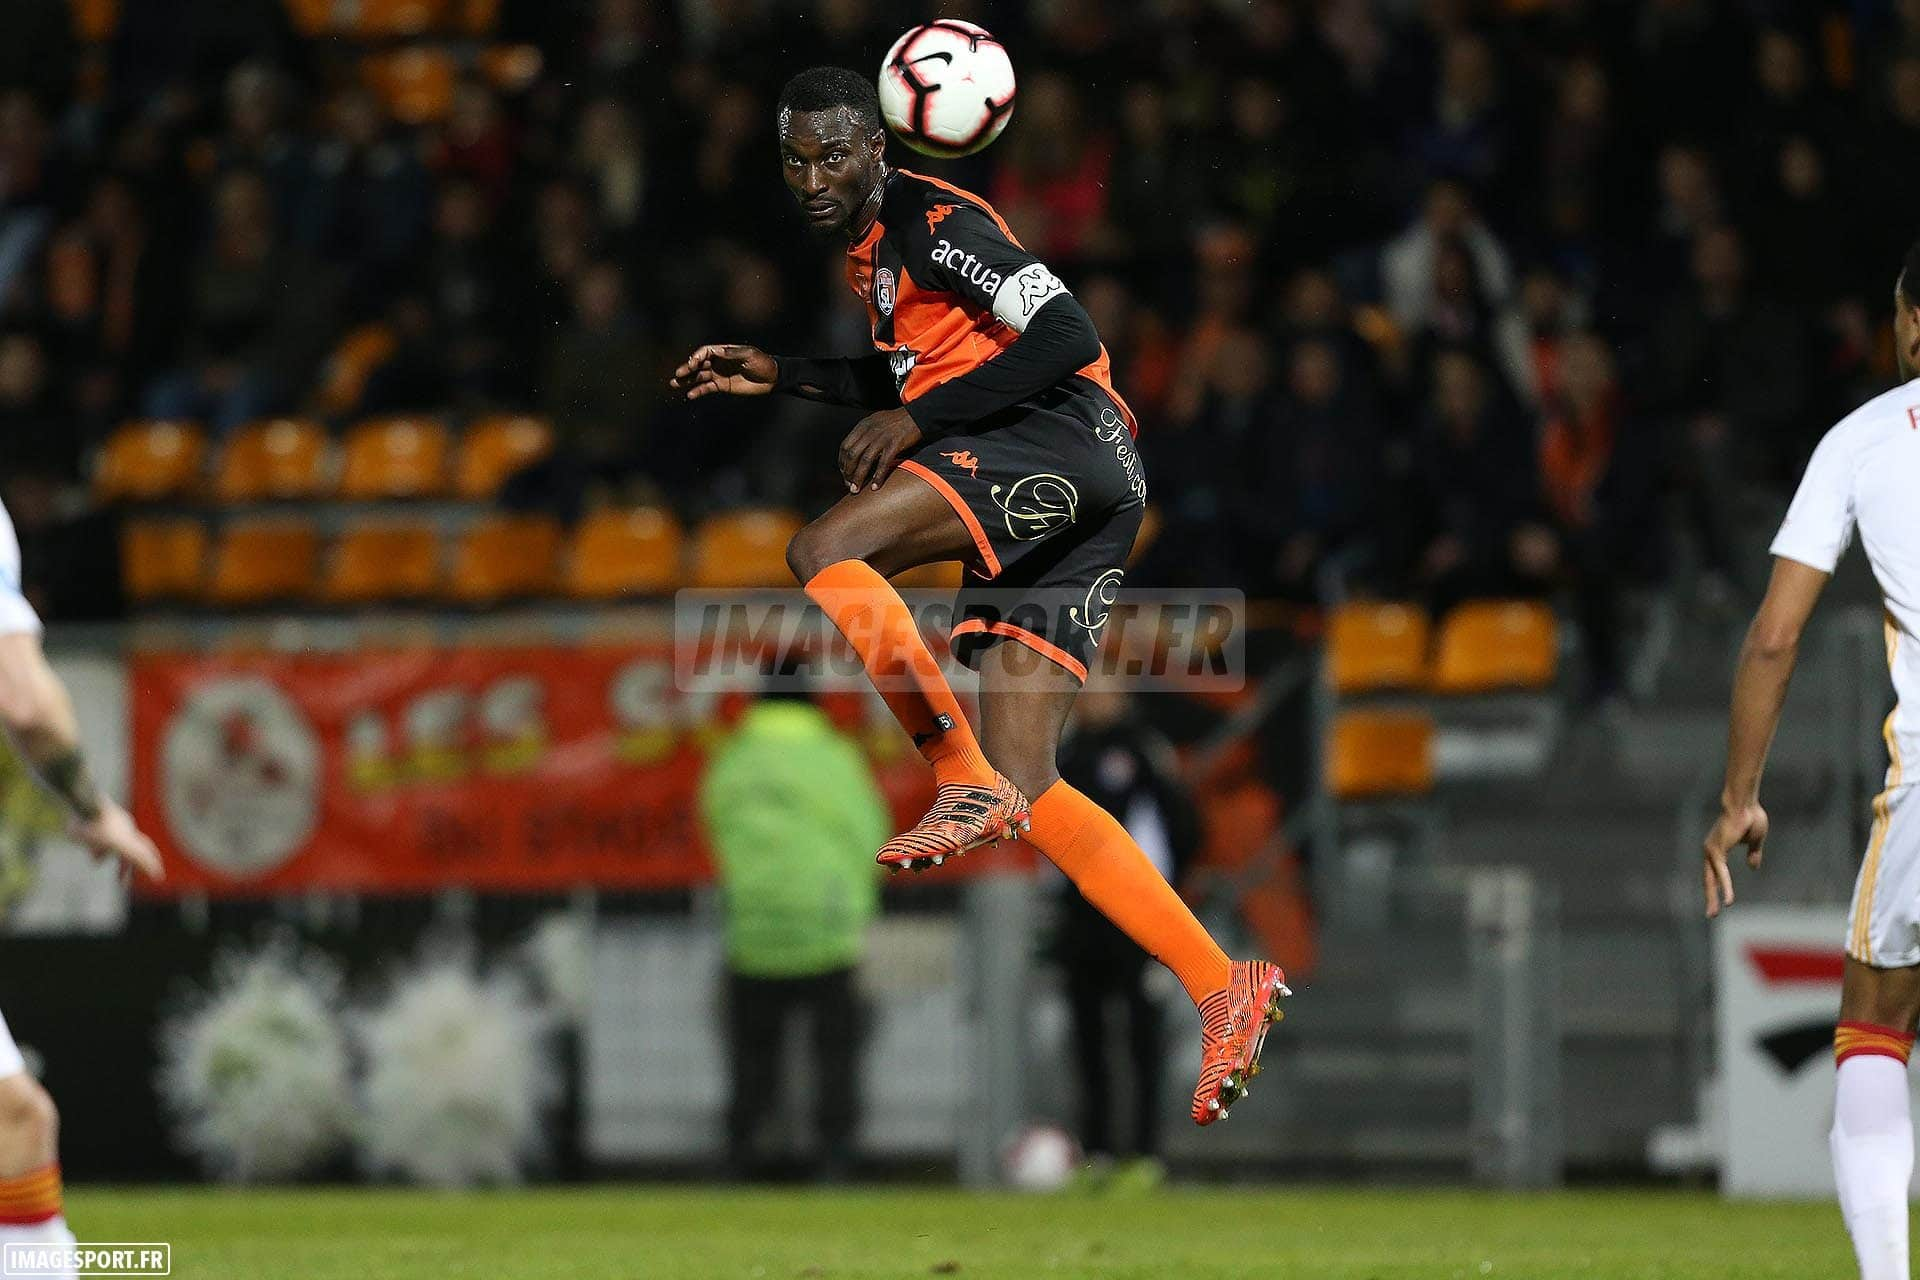 18-19-national-laval-rodez_38